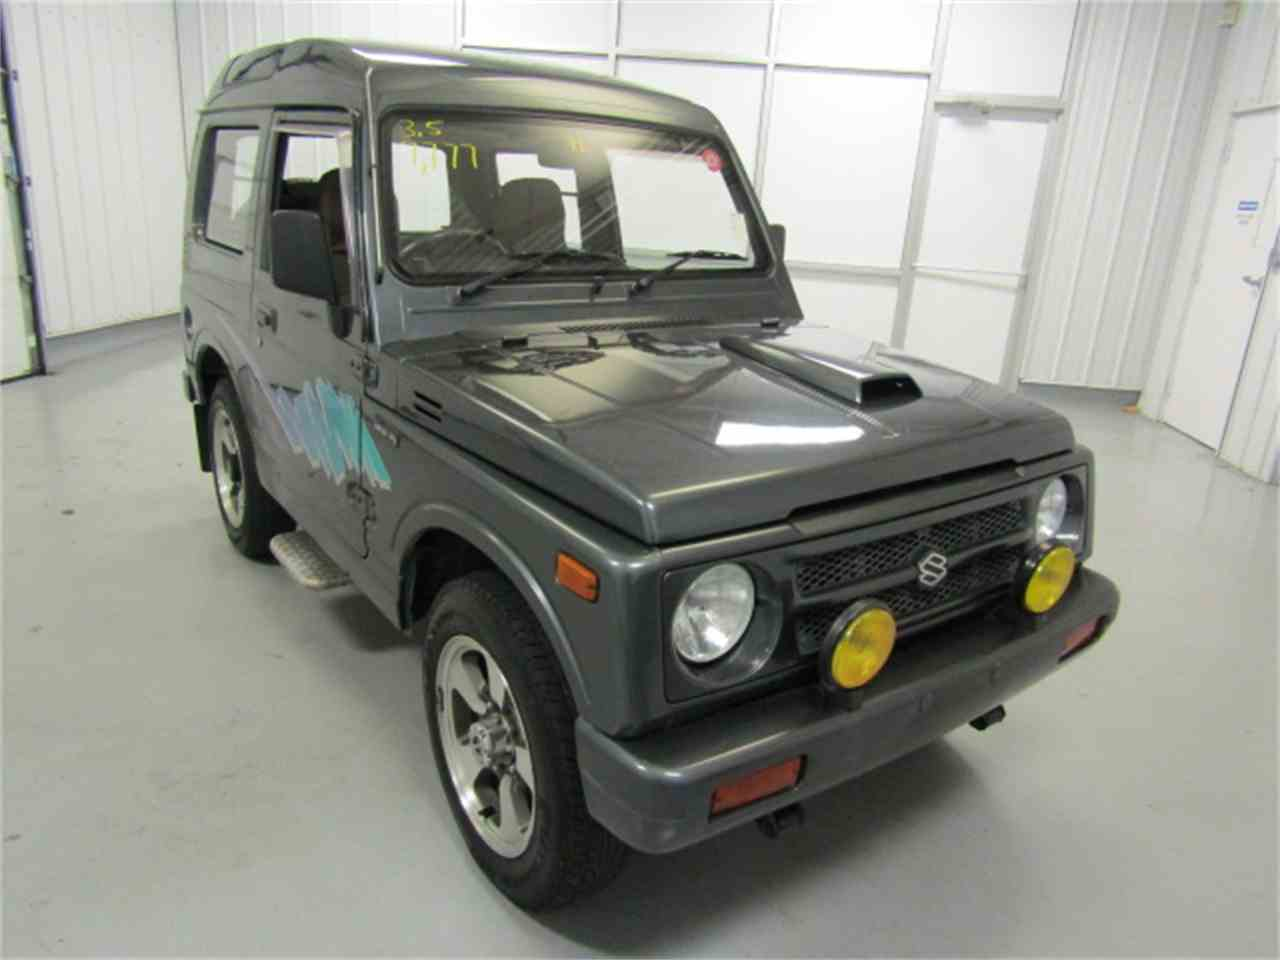 1991 Suzuki Jimmy for Sale - CC-915101